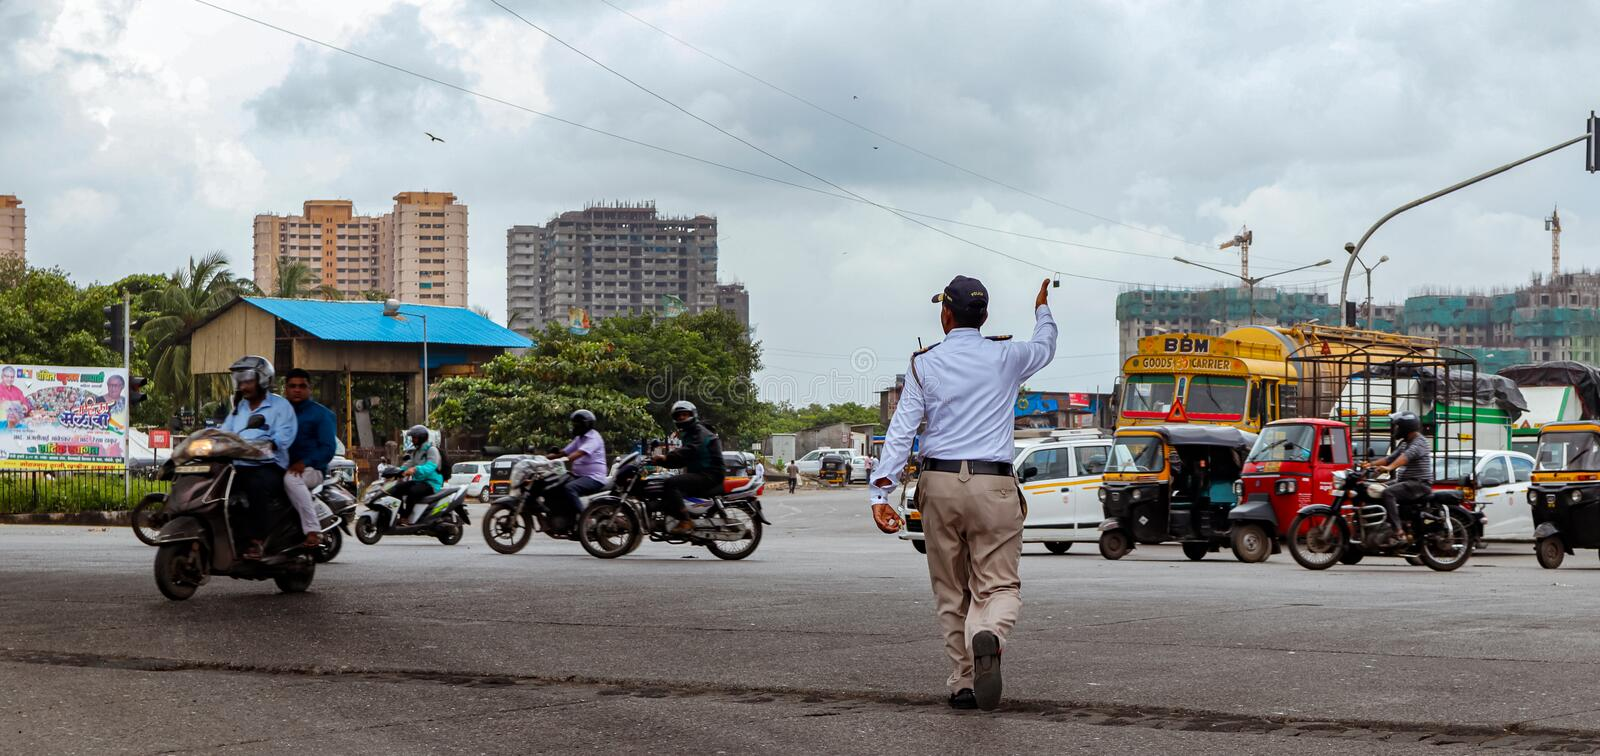 Mumbai,India,August-21-2019:India`s new motor vehicle act posing challenges to traffic police managing traffic offences. India`s new motor vehicle act posing stock images